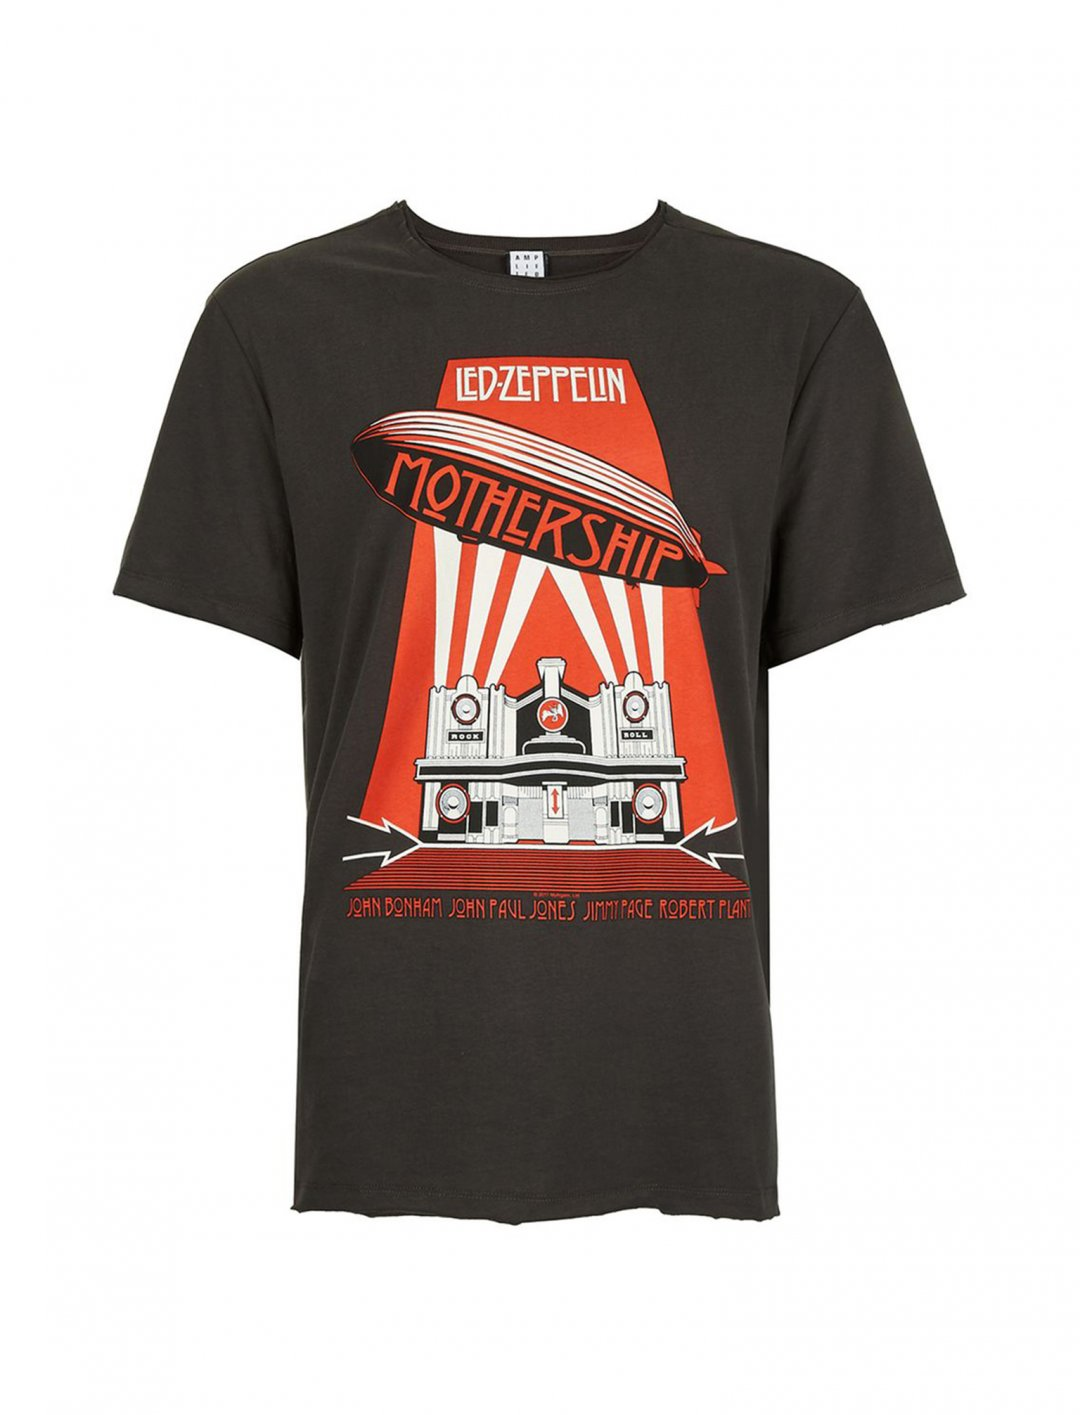 "Led Zeppelin T-Shirt {""id"":5,""product_section_id"":1,""name"":""Clothing"",""order"":5} Amplified"